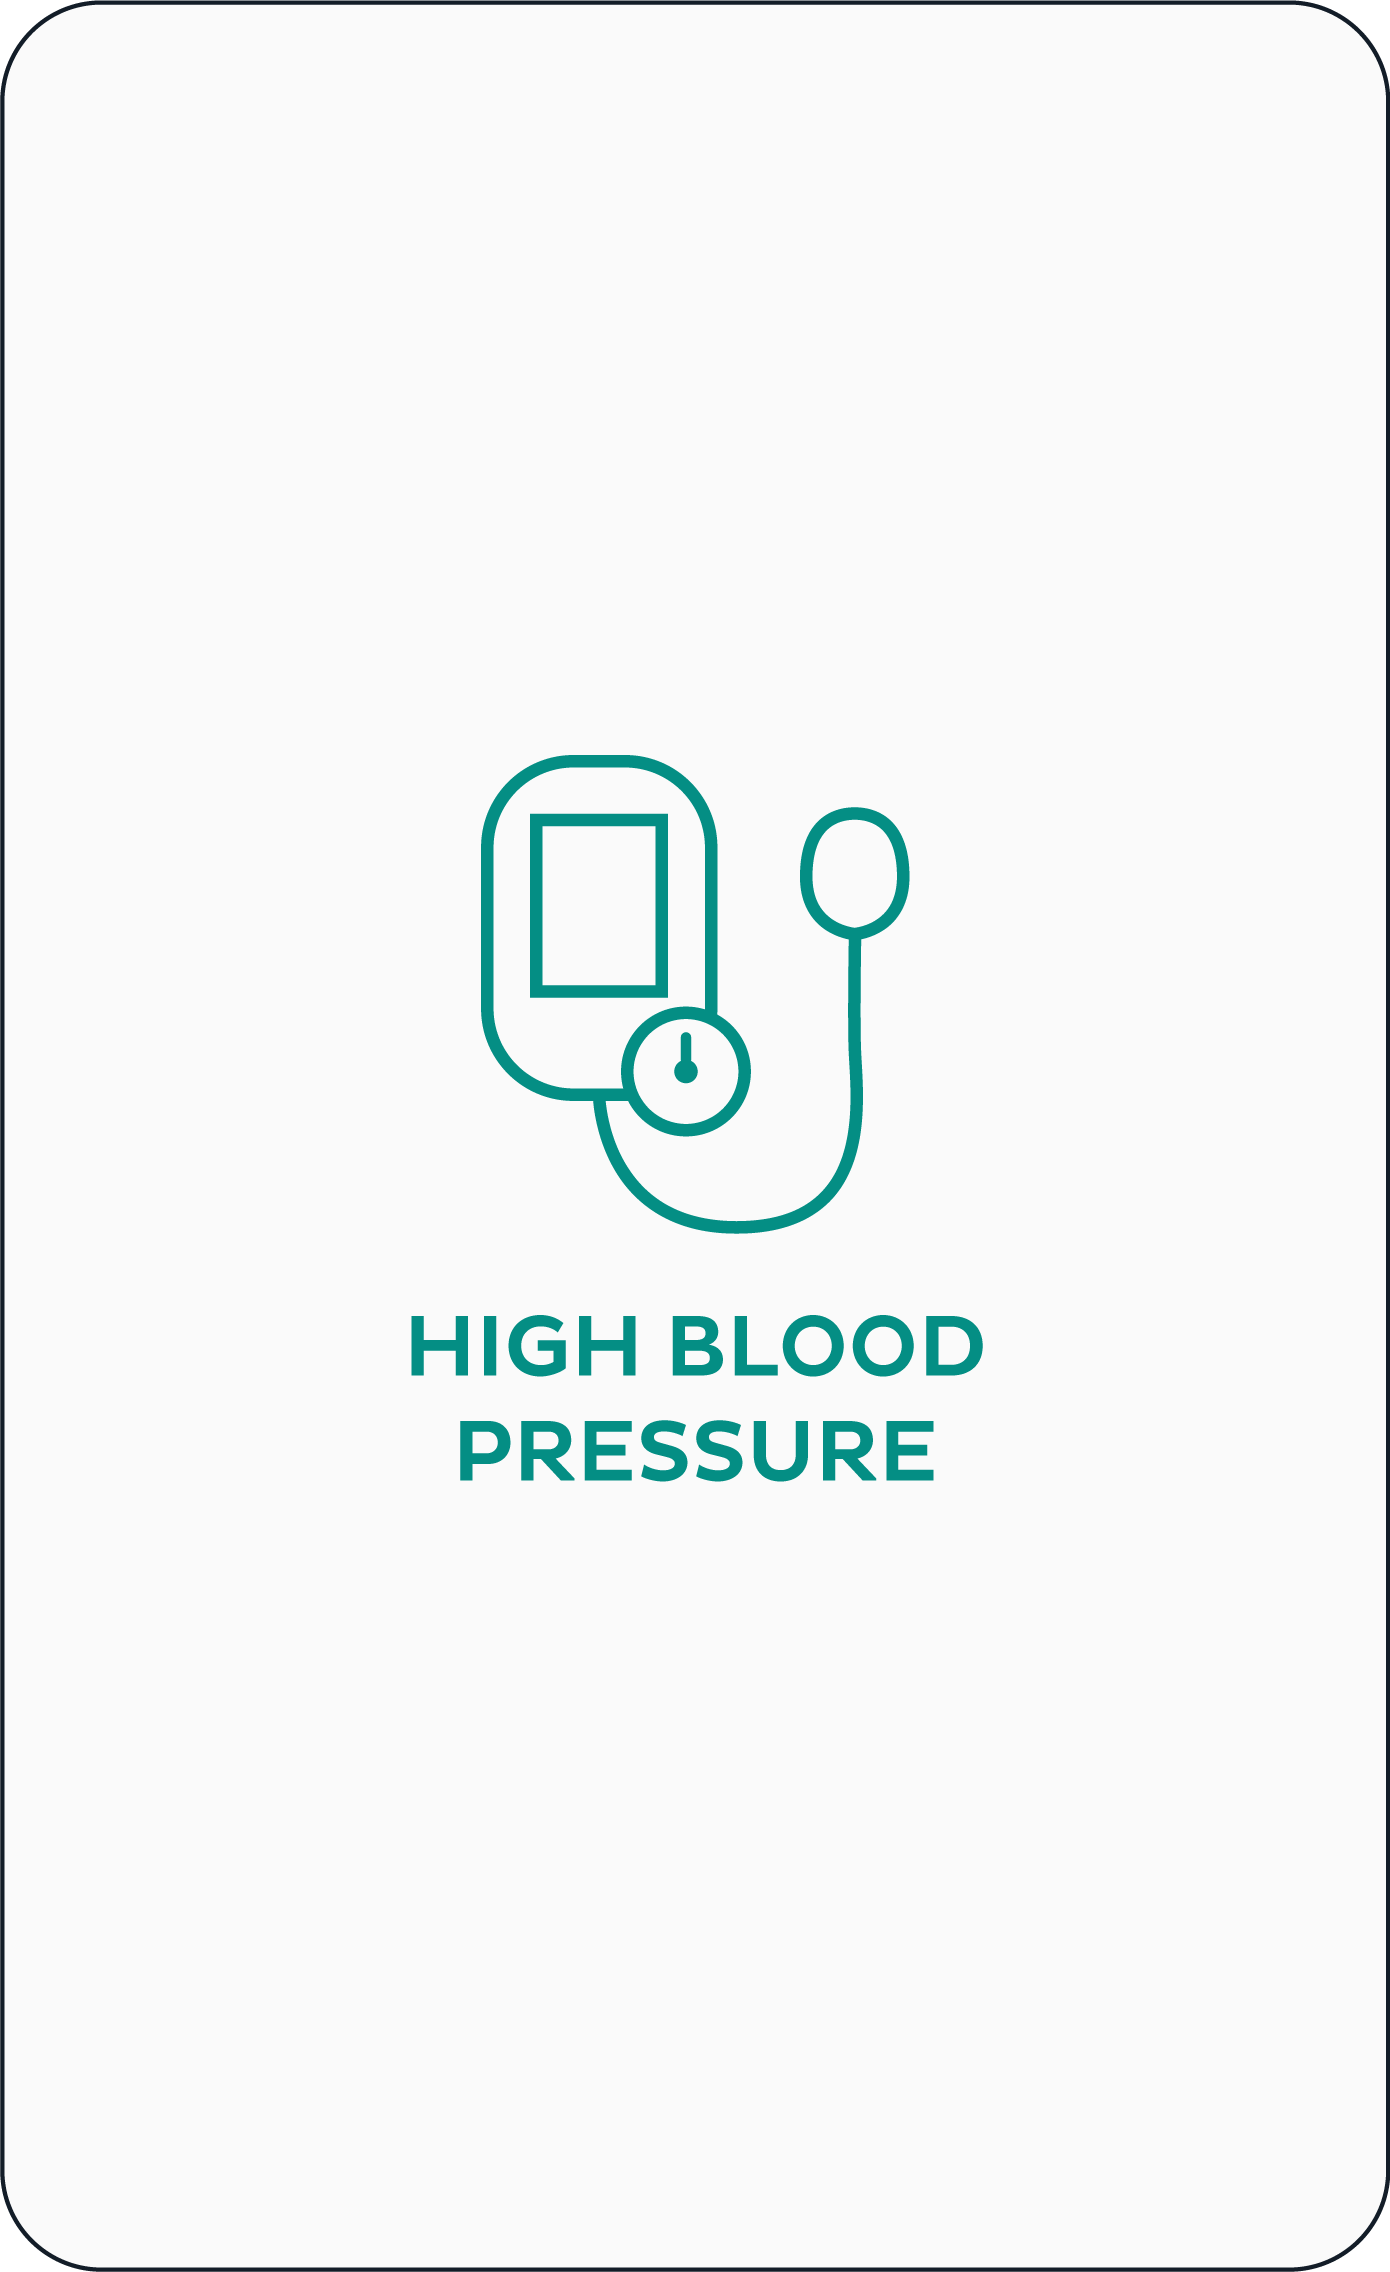 Speedoc's high blood pressure Chronic Disease Home Management (CDHM™) Package details 1